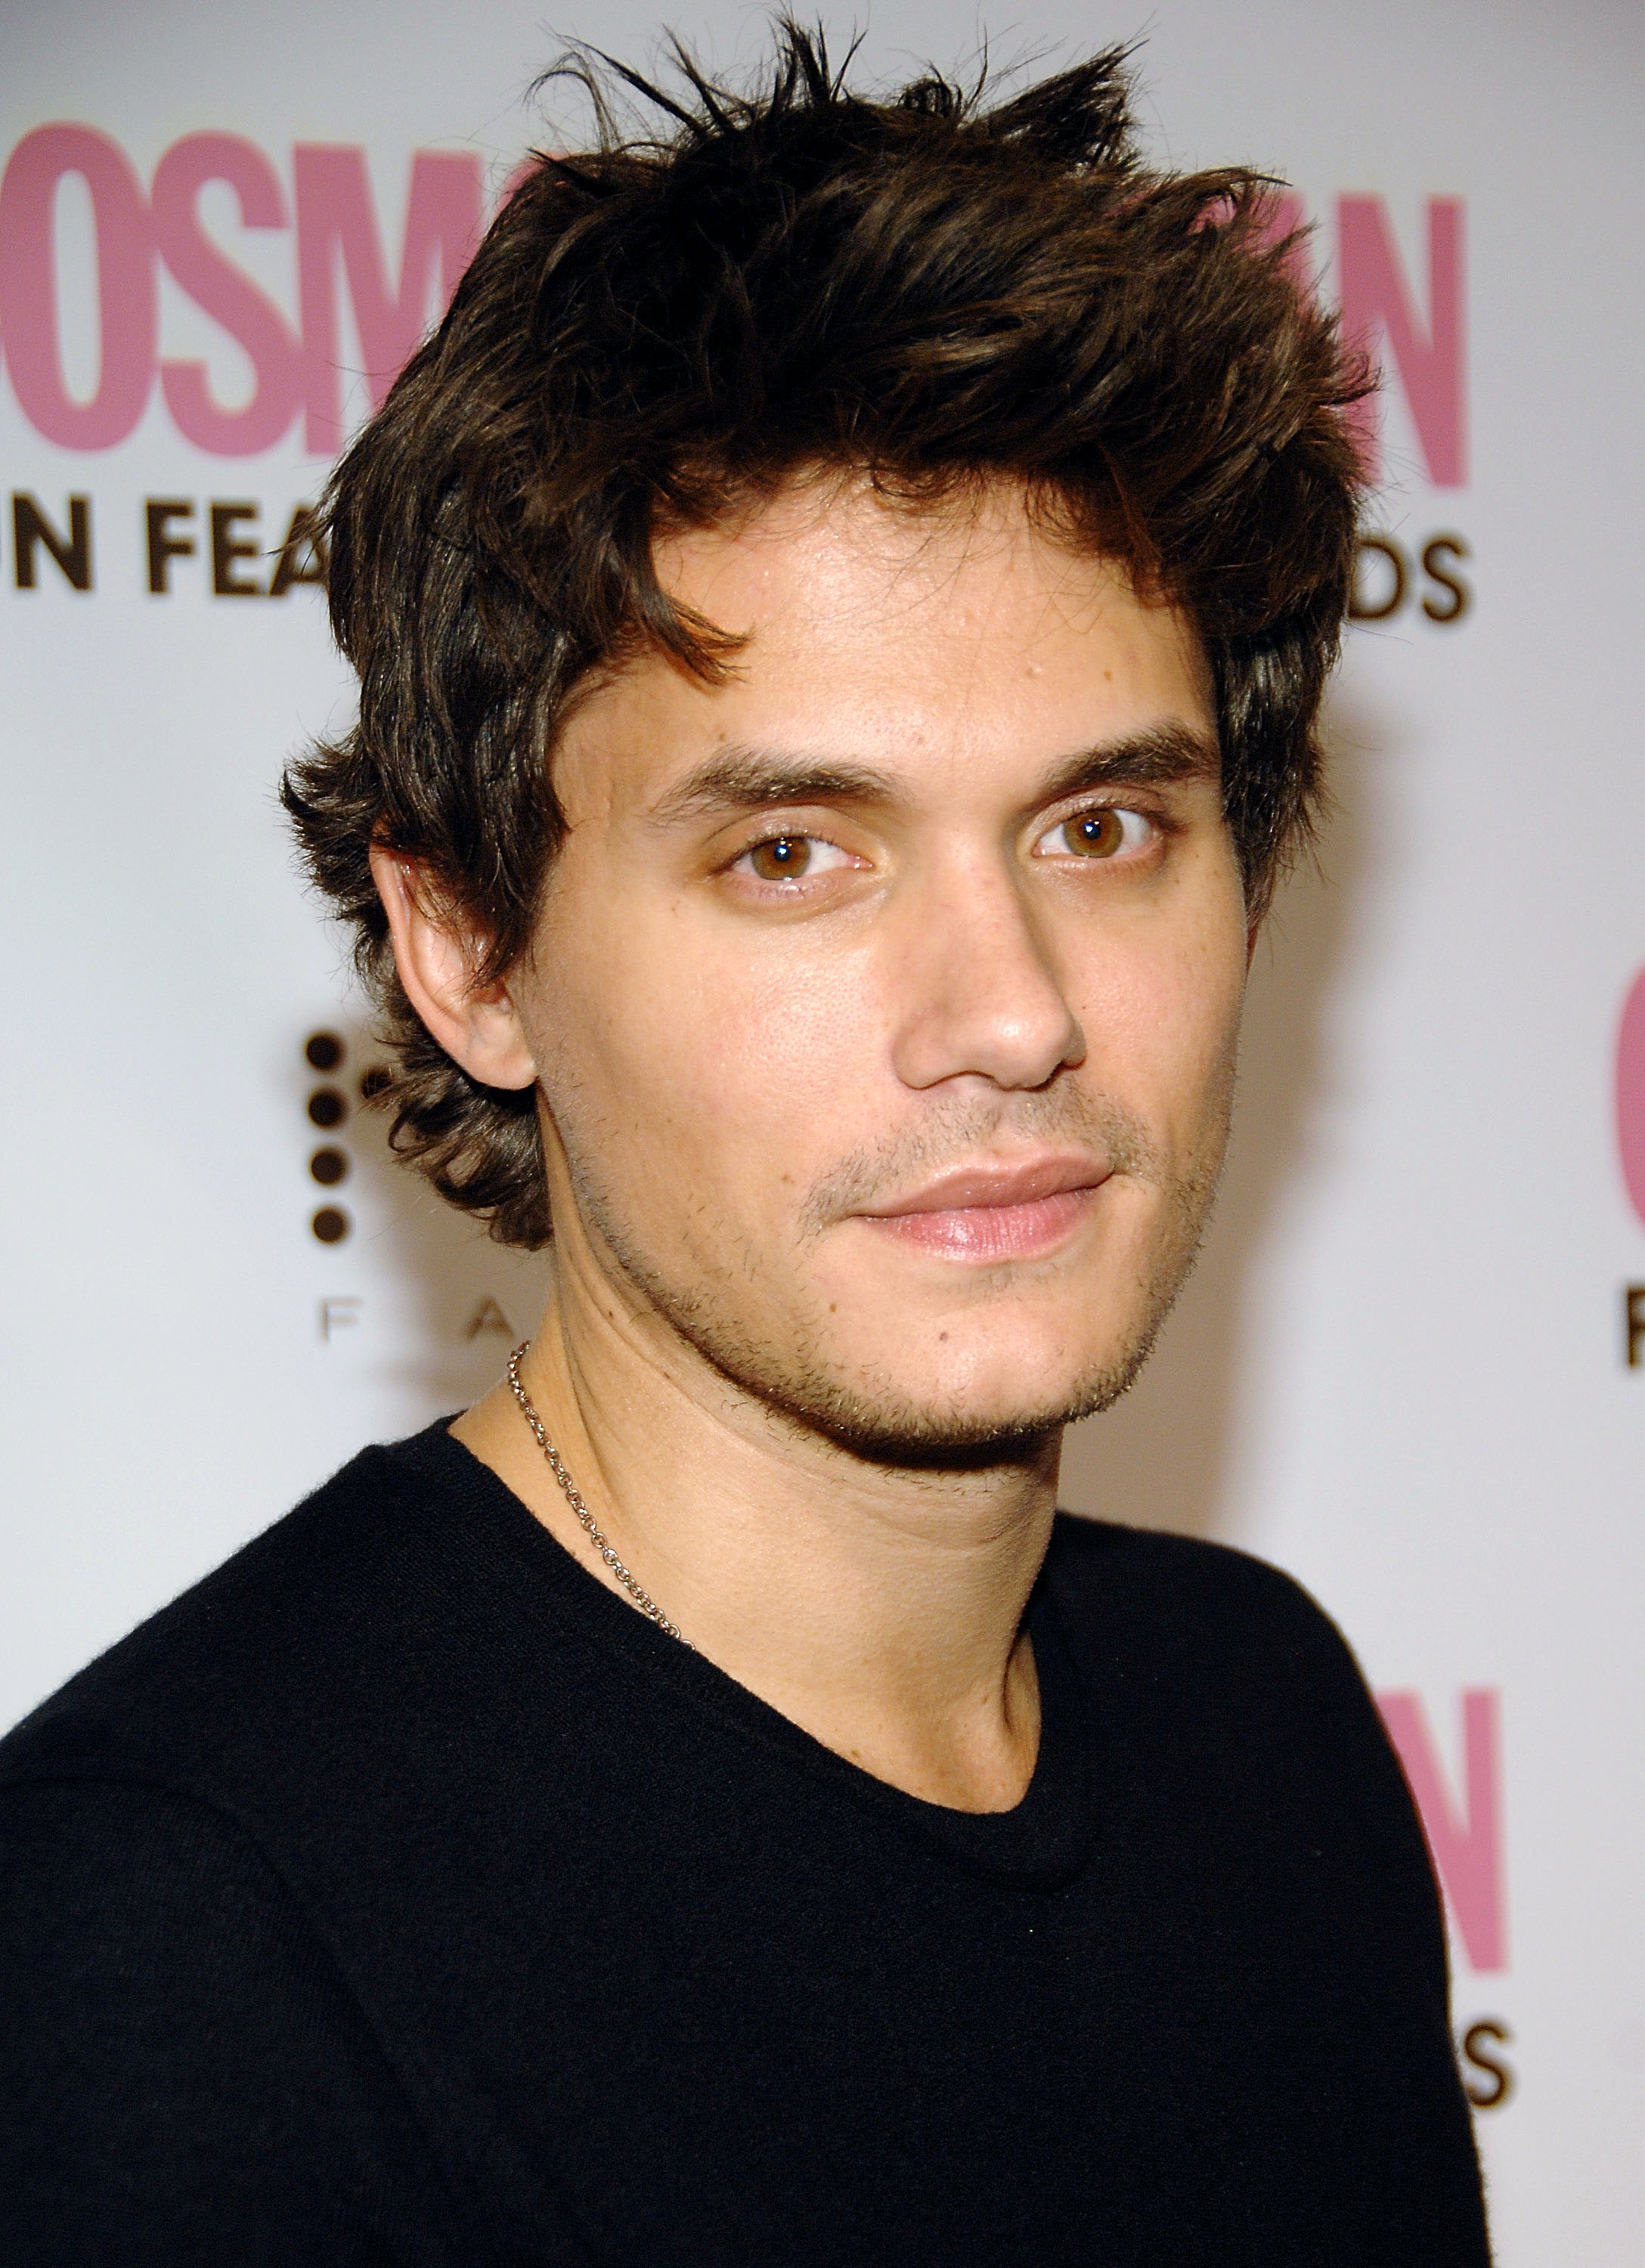 John Mayer Wallpapers High Quality | Download Free